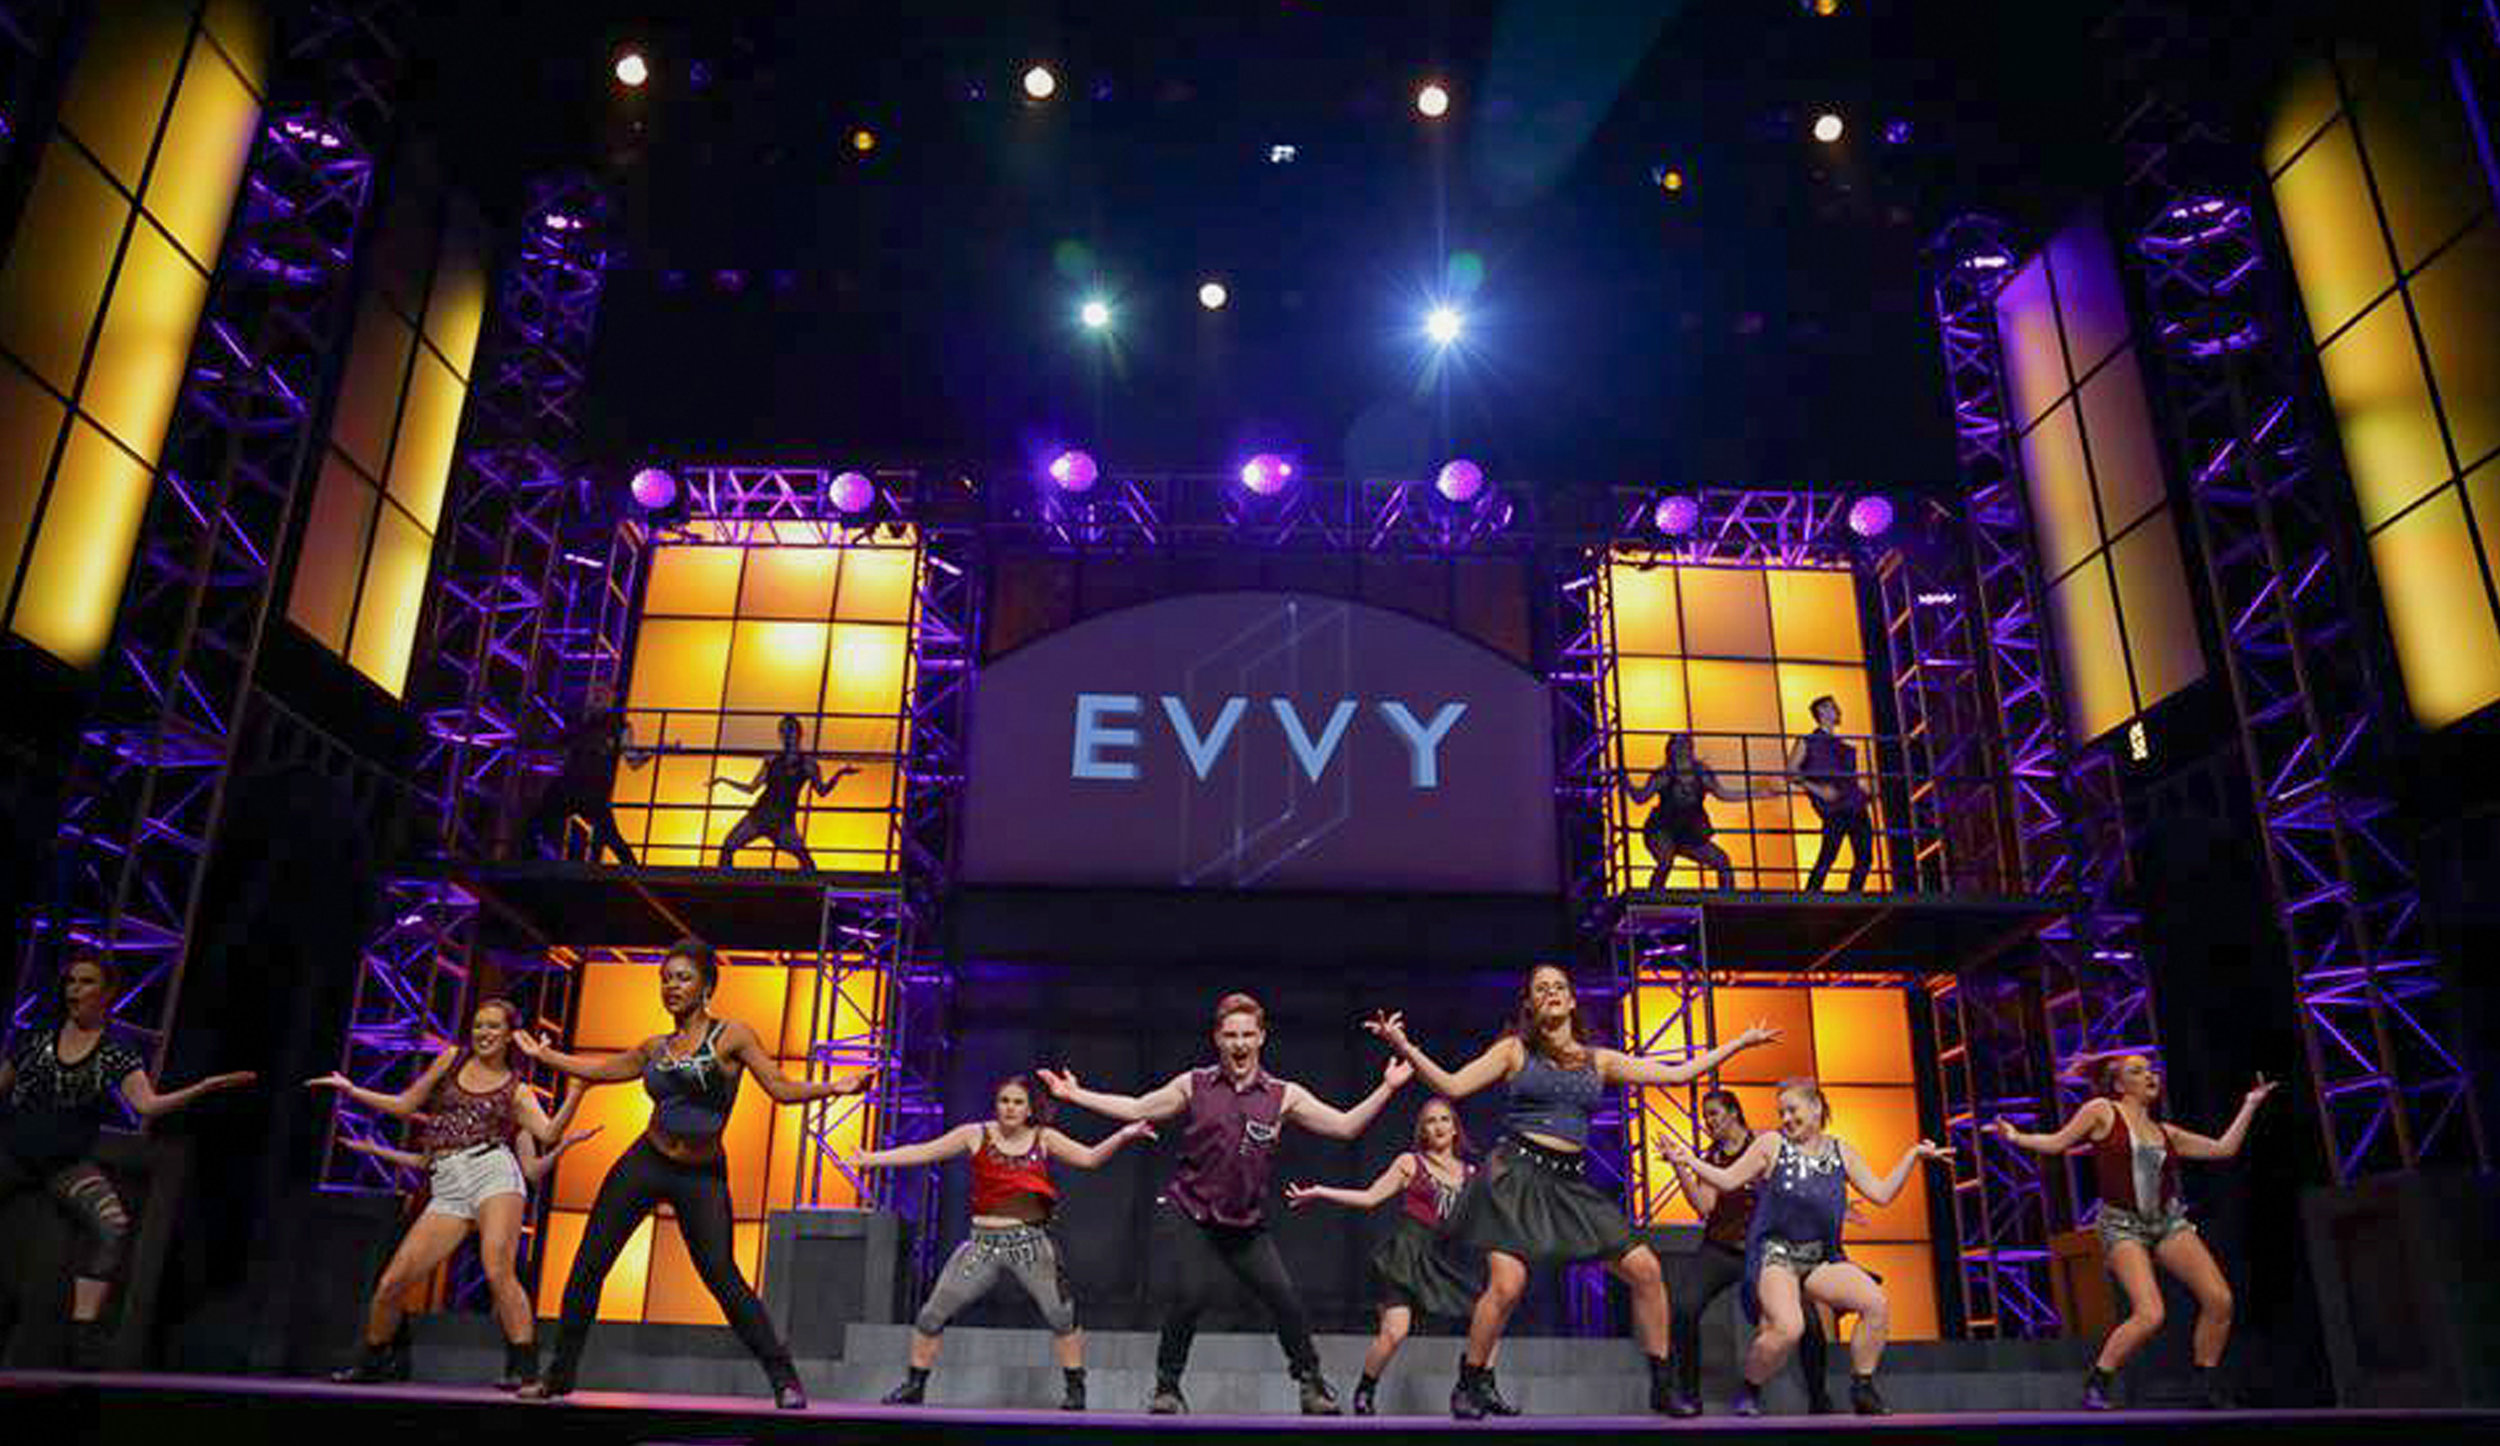 The34th annual evvy awards - Presented by The EVVY Awards